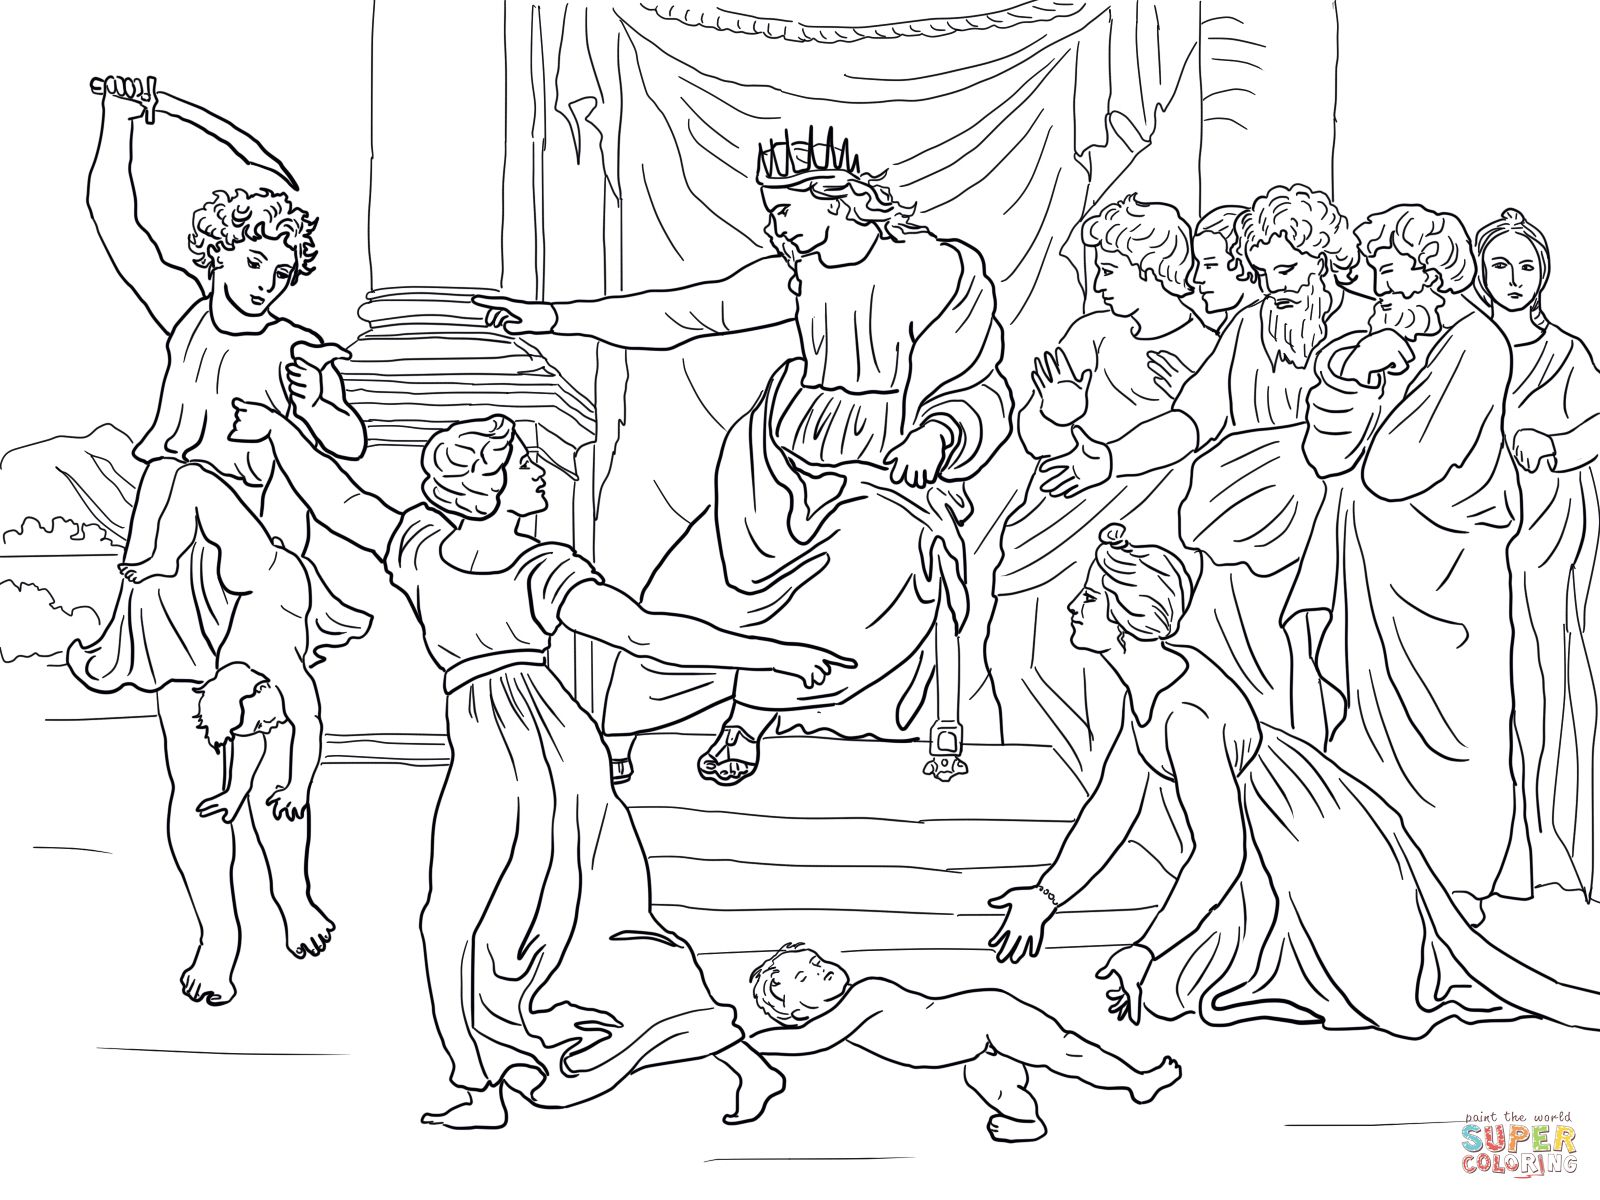 Judgment Of Solomon Coloring Page